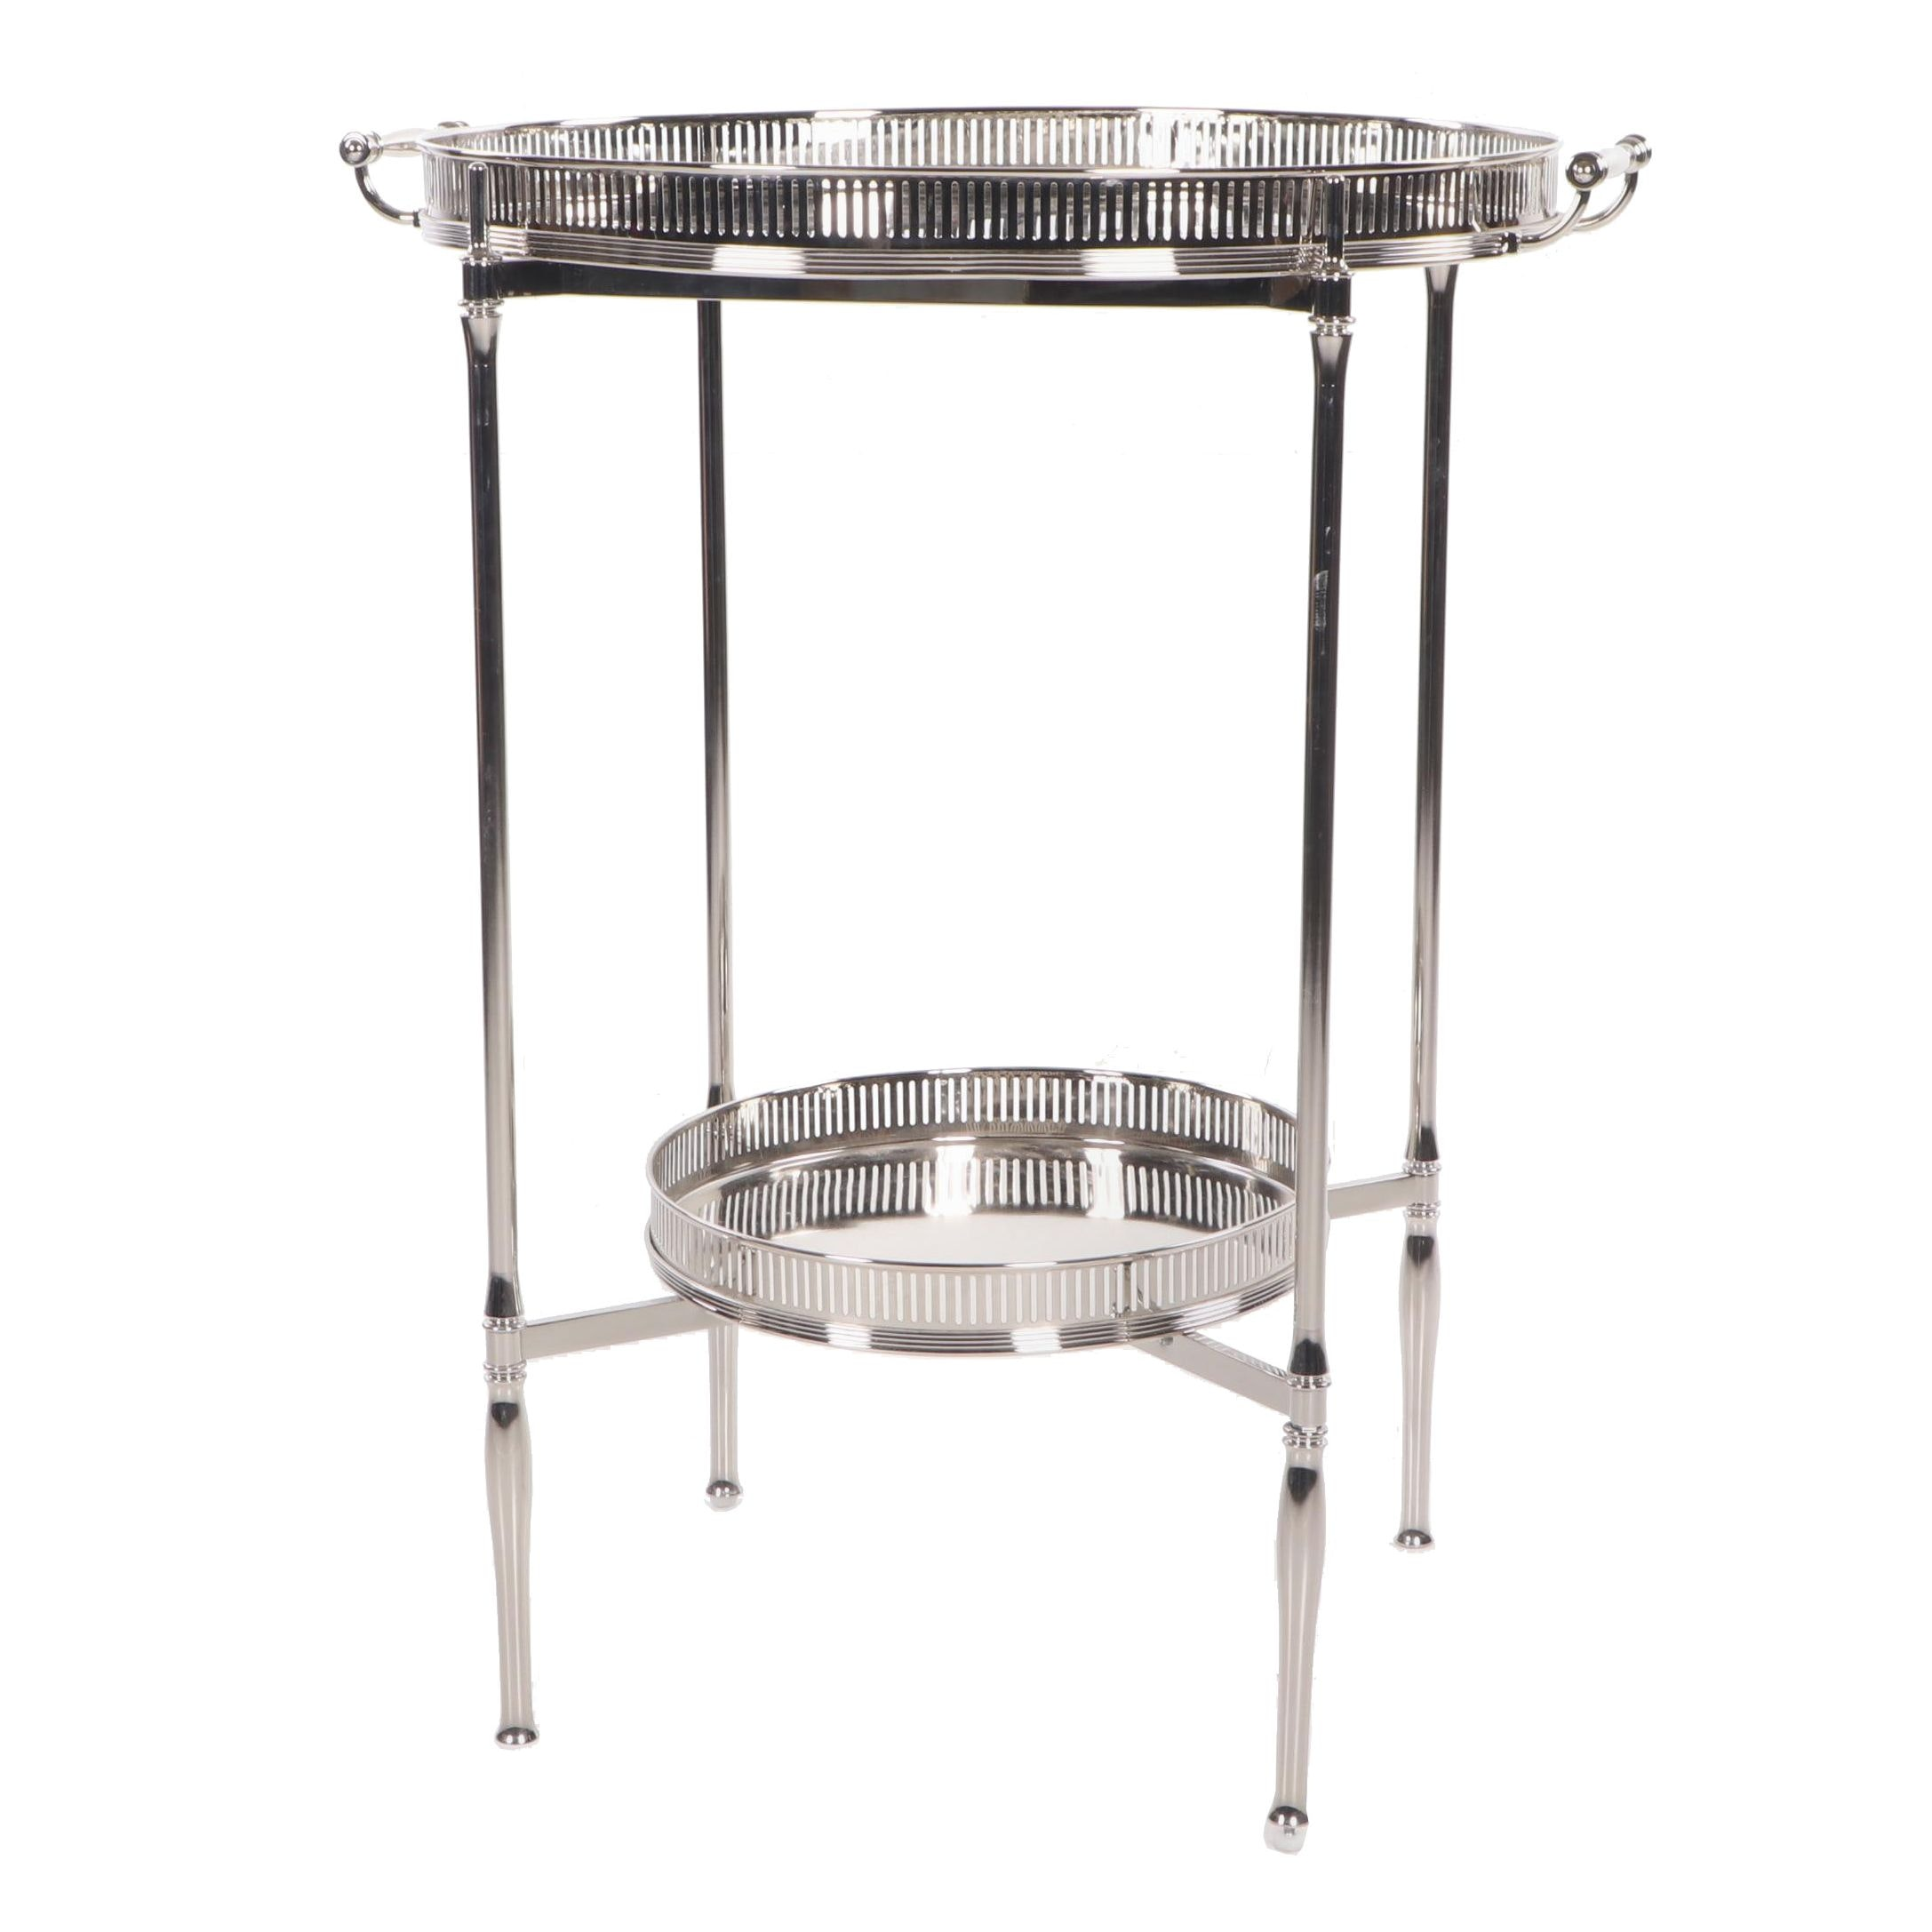 Mirrored Tiered Tray Table, Contemporary